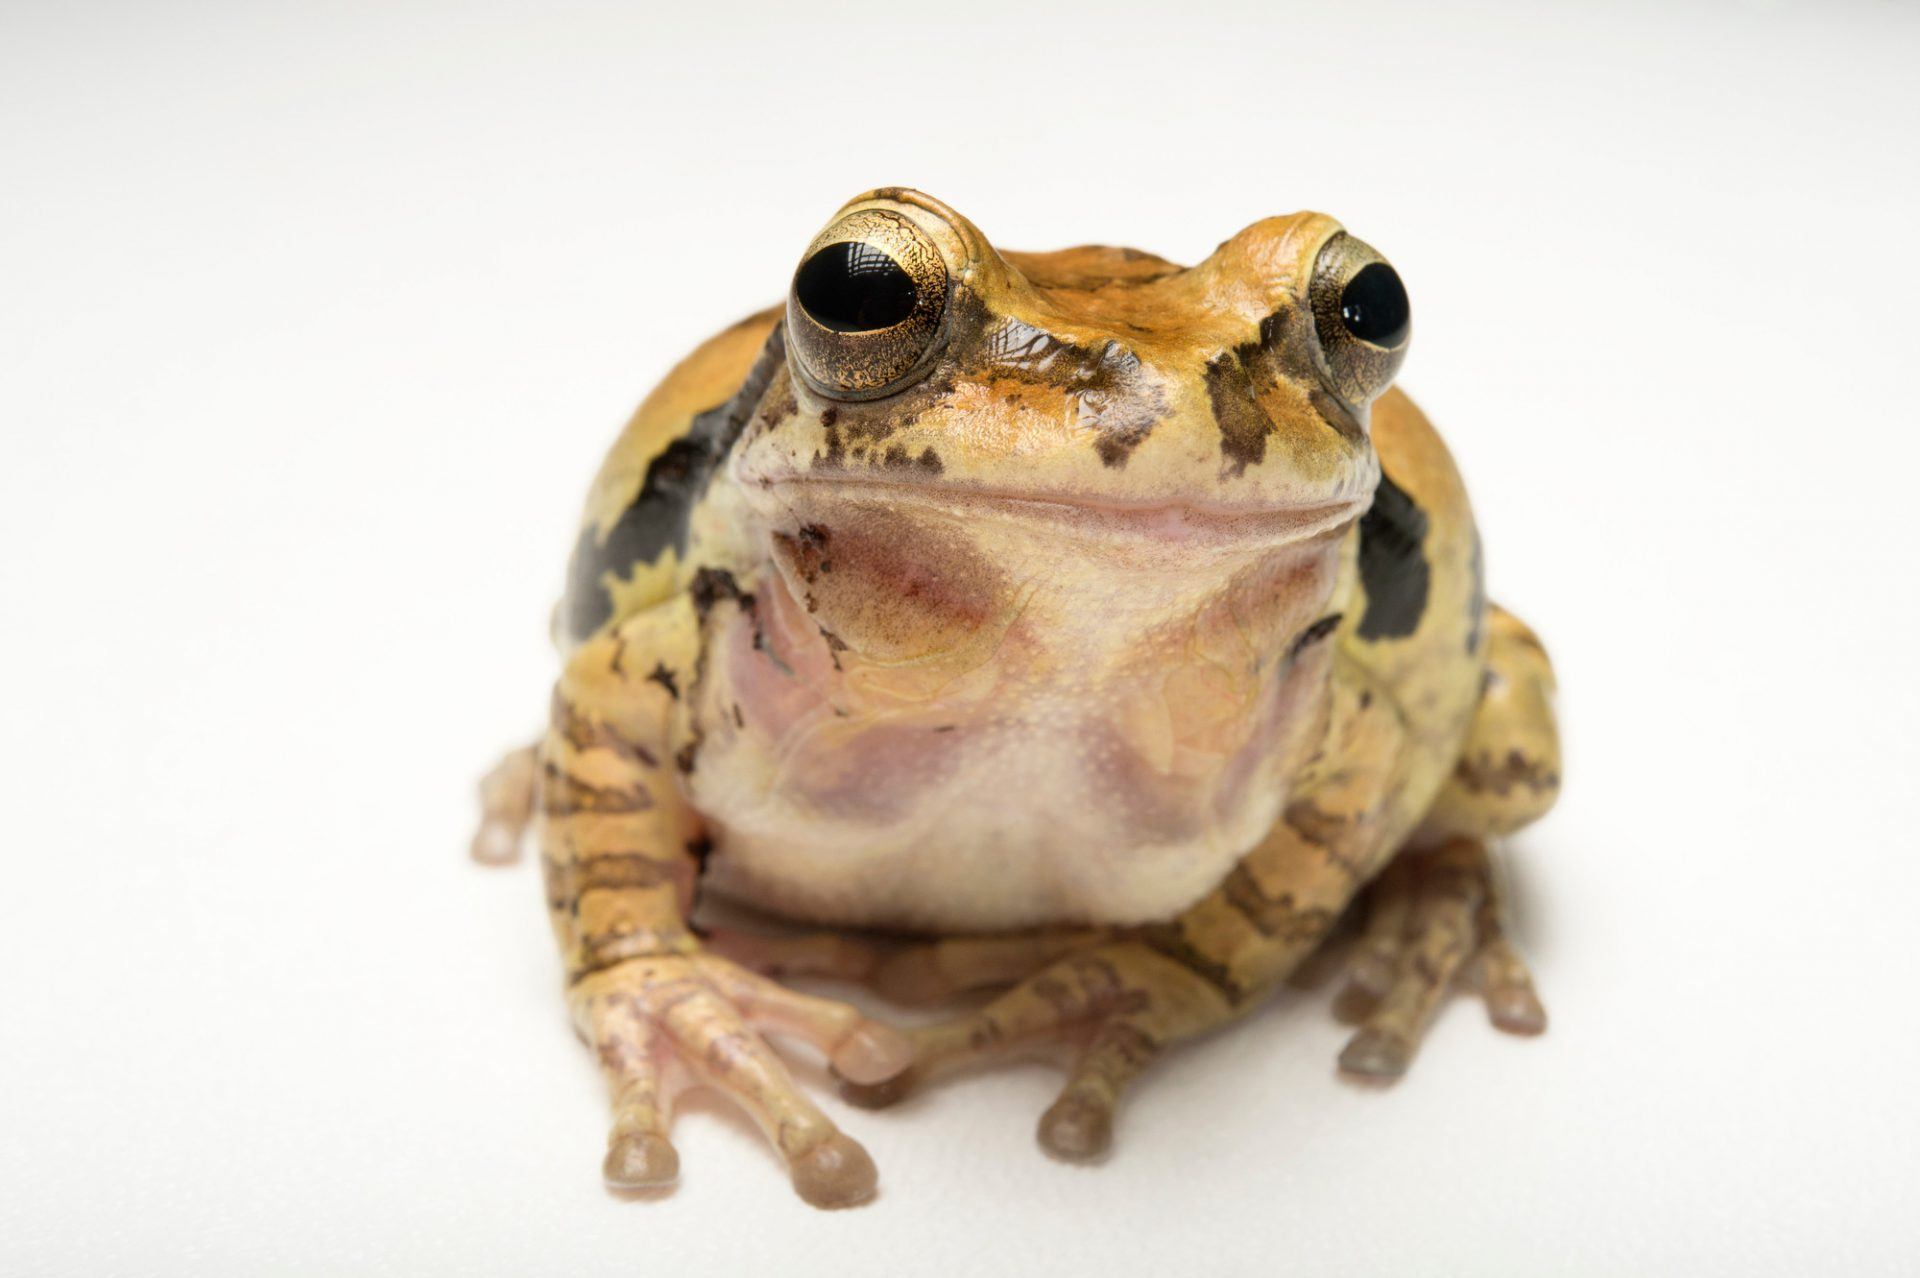 Picture of a common Mexican tree frog (Smilisca baudinii) at the Santa Barbara Zoo.